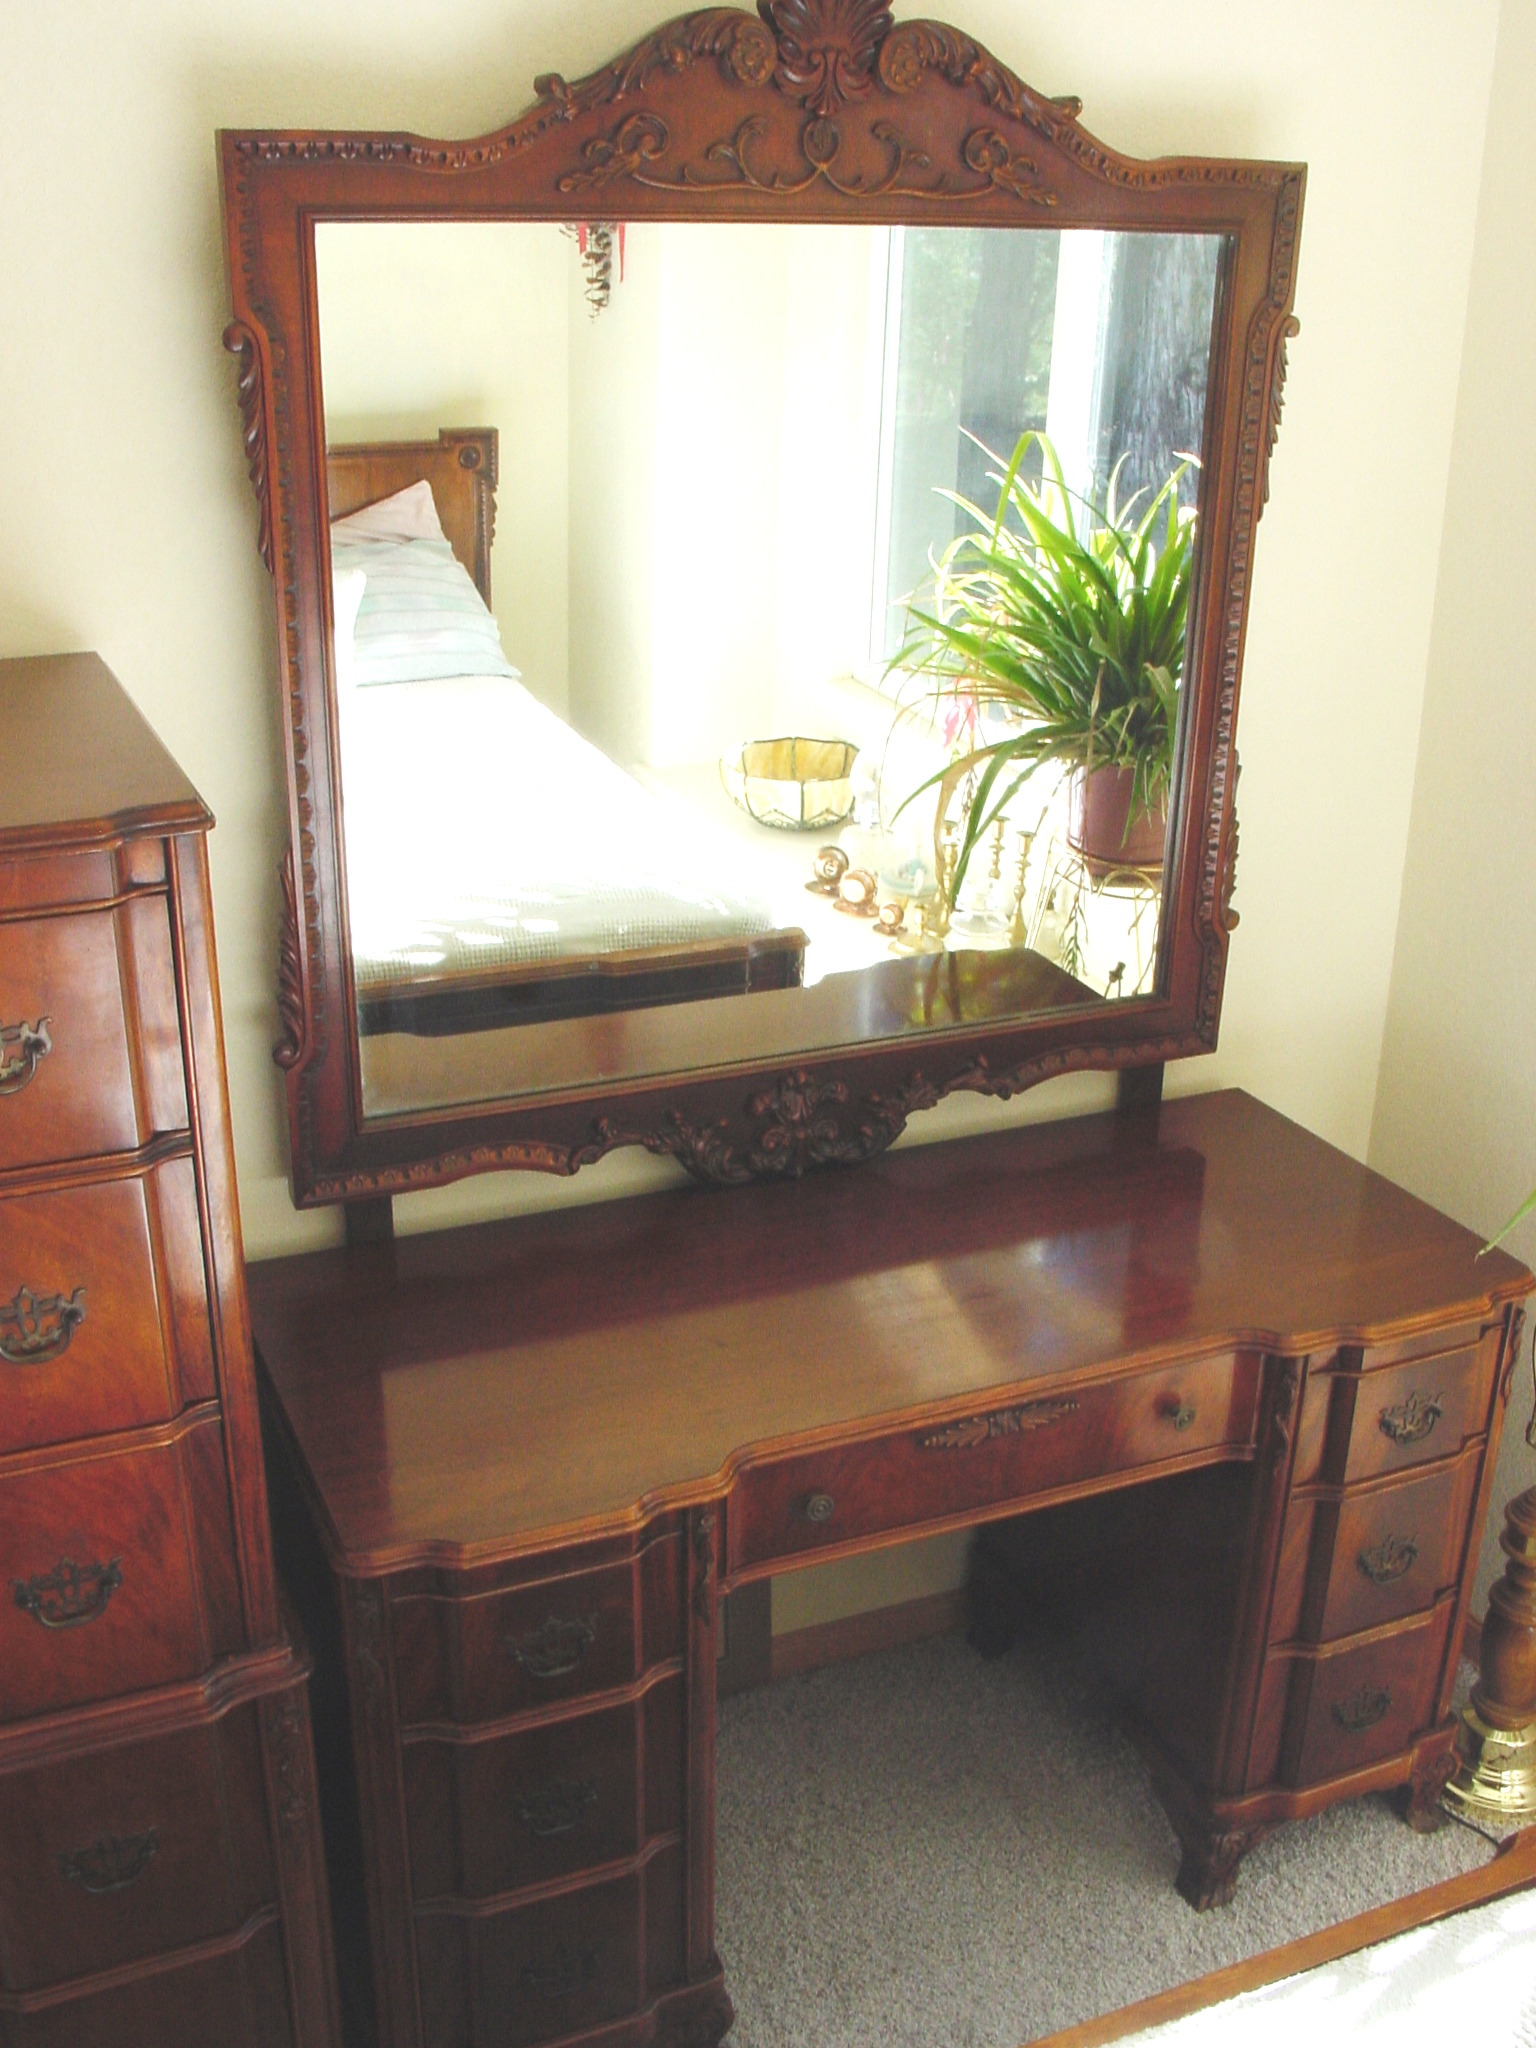 Antique Chippendale Bedroom Furniture Luxury Chippendale Revival Circa 1940 5 Pc Bedroom Set for Sale